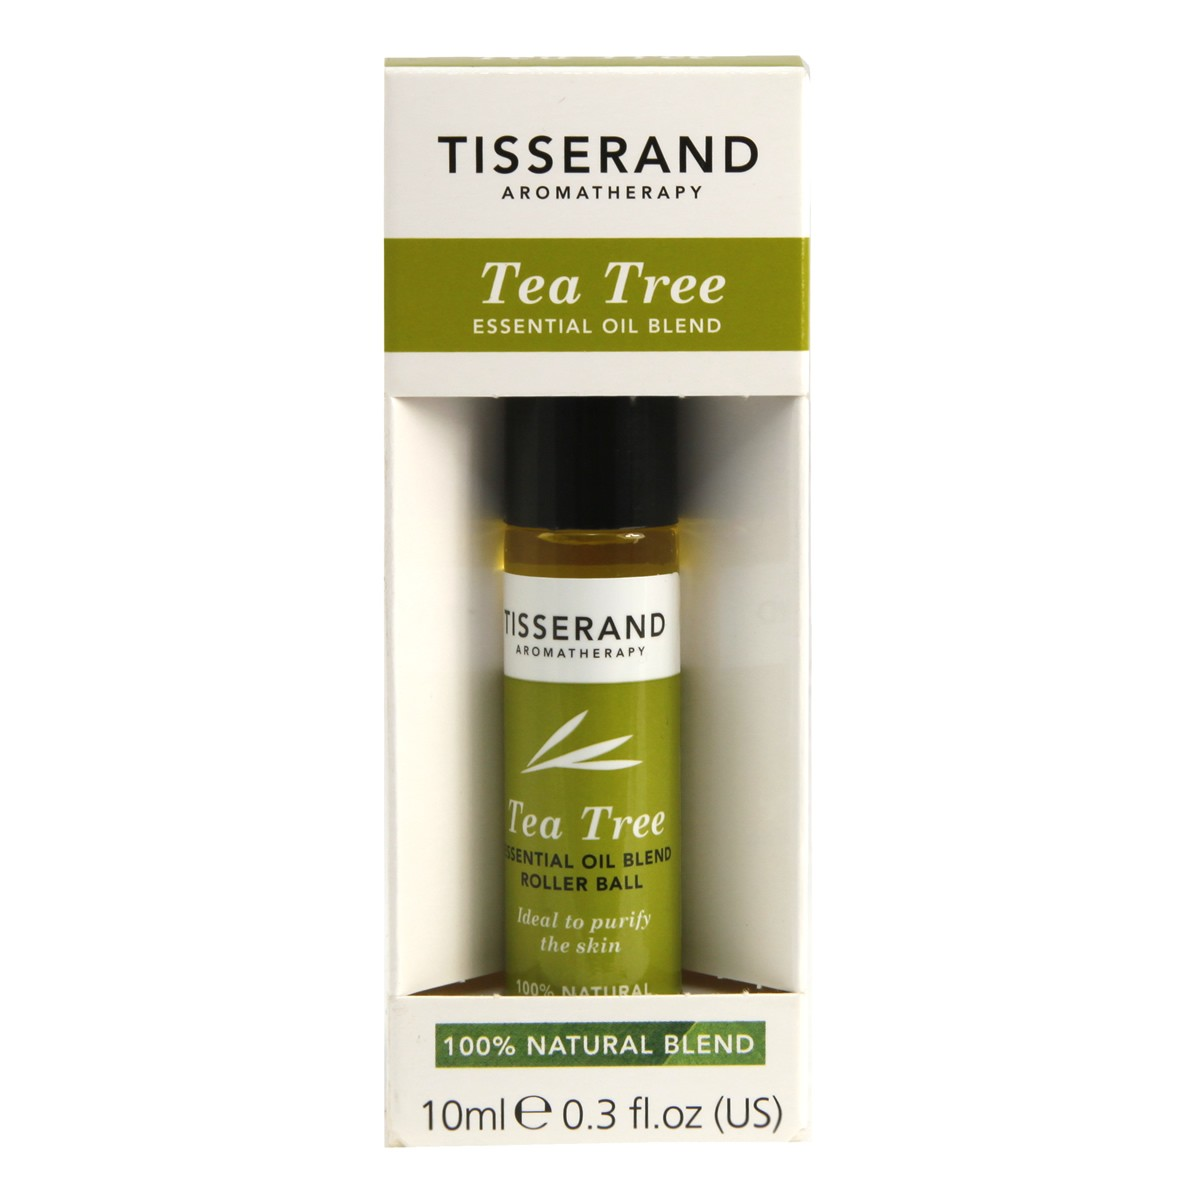 Tisserand Tea Tree Essential Oil Blend Roller Ball